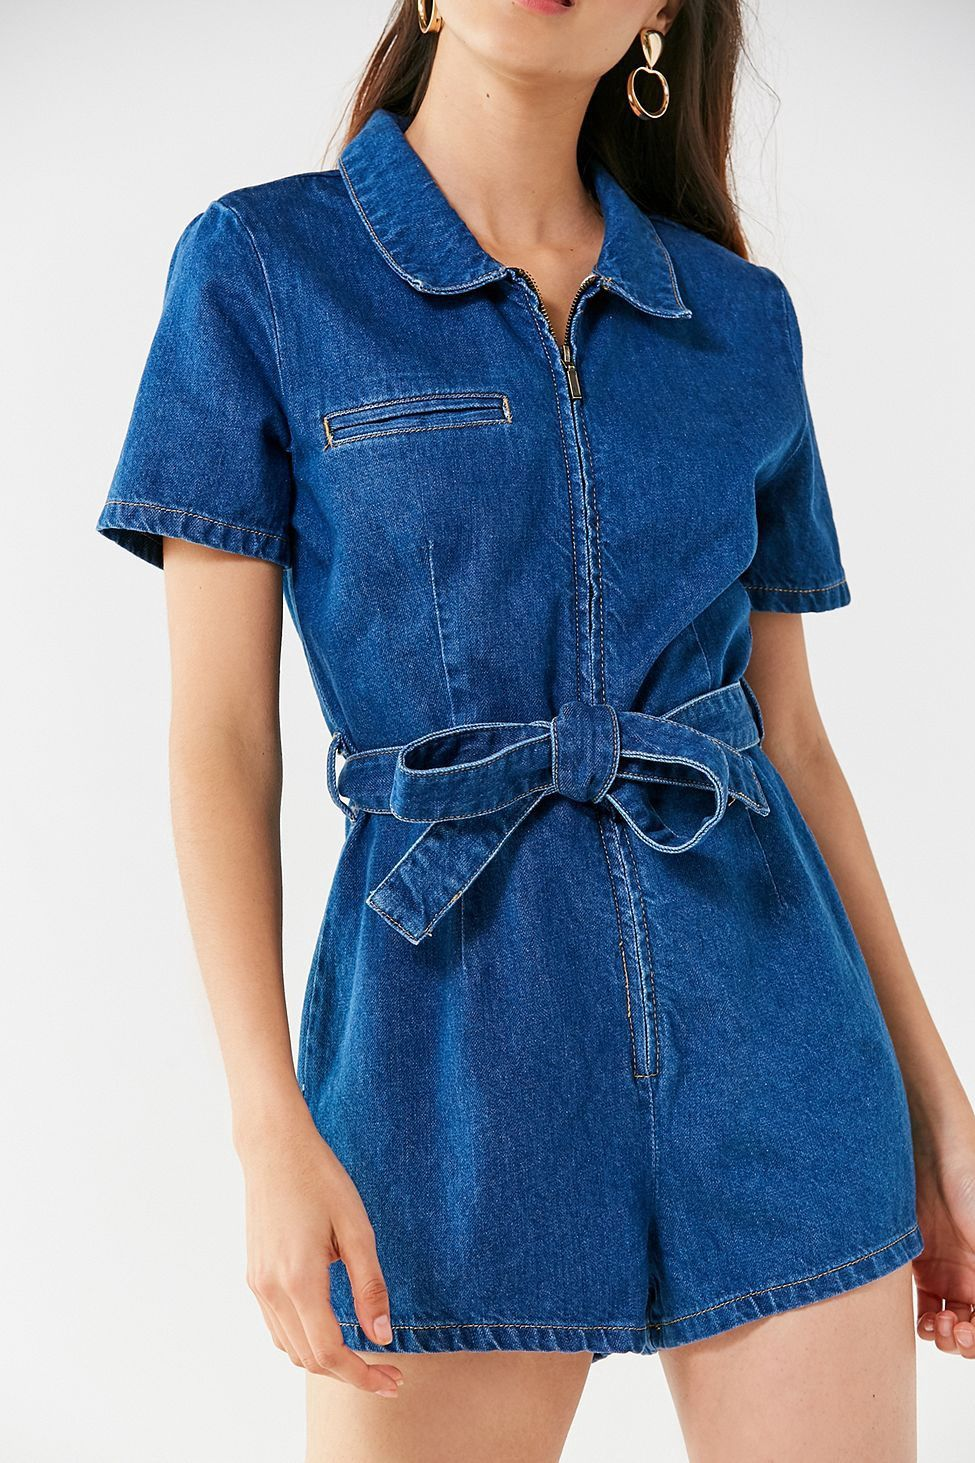 d46bc8dcf2c UO Hello Sunshine Denim Romper by Urban Outfitters in 2019 ...